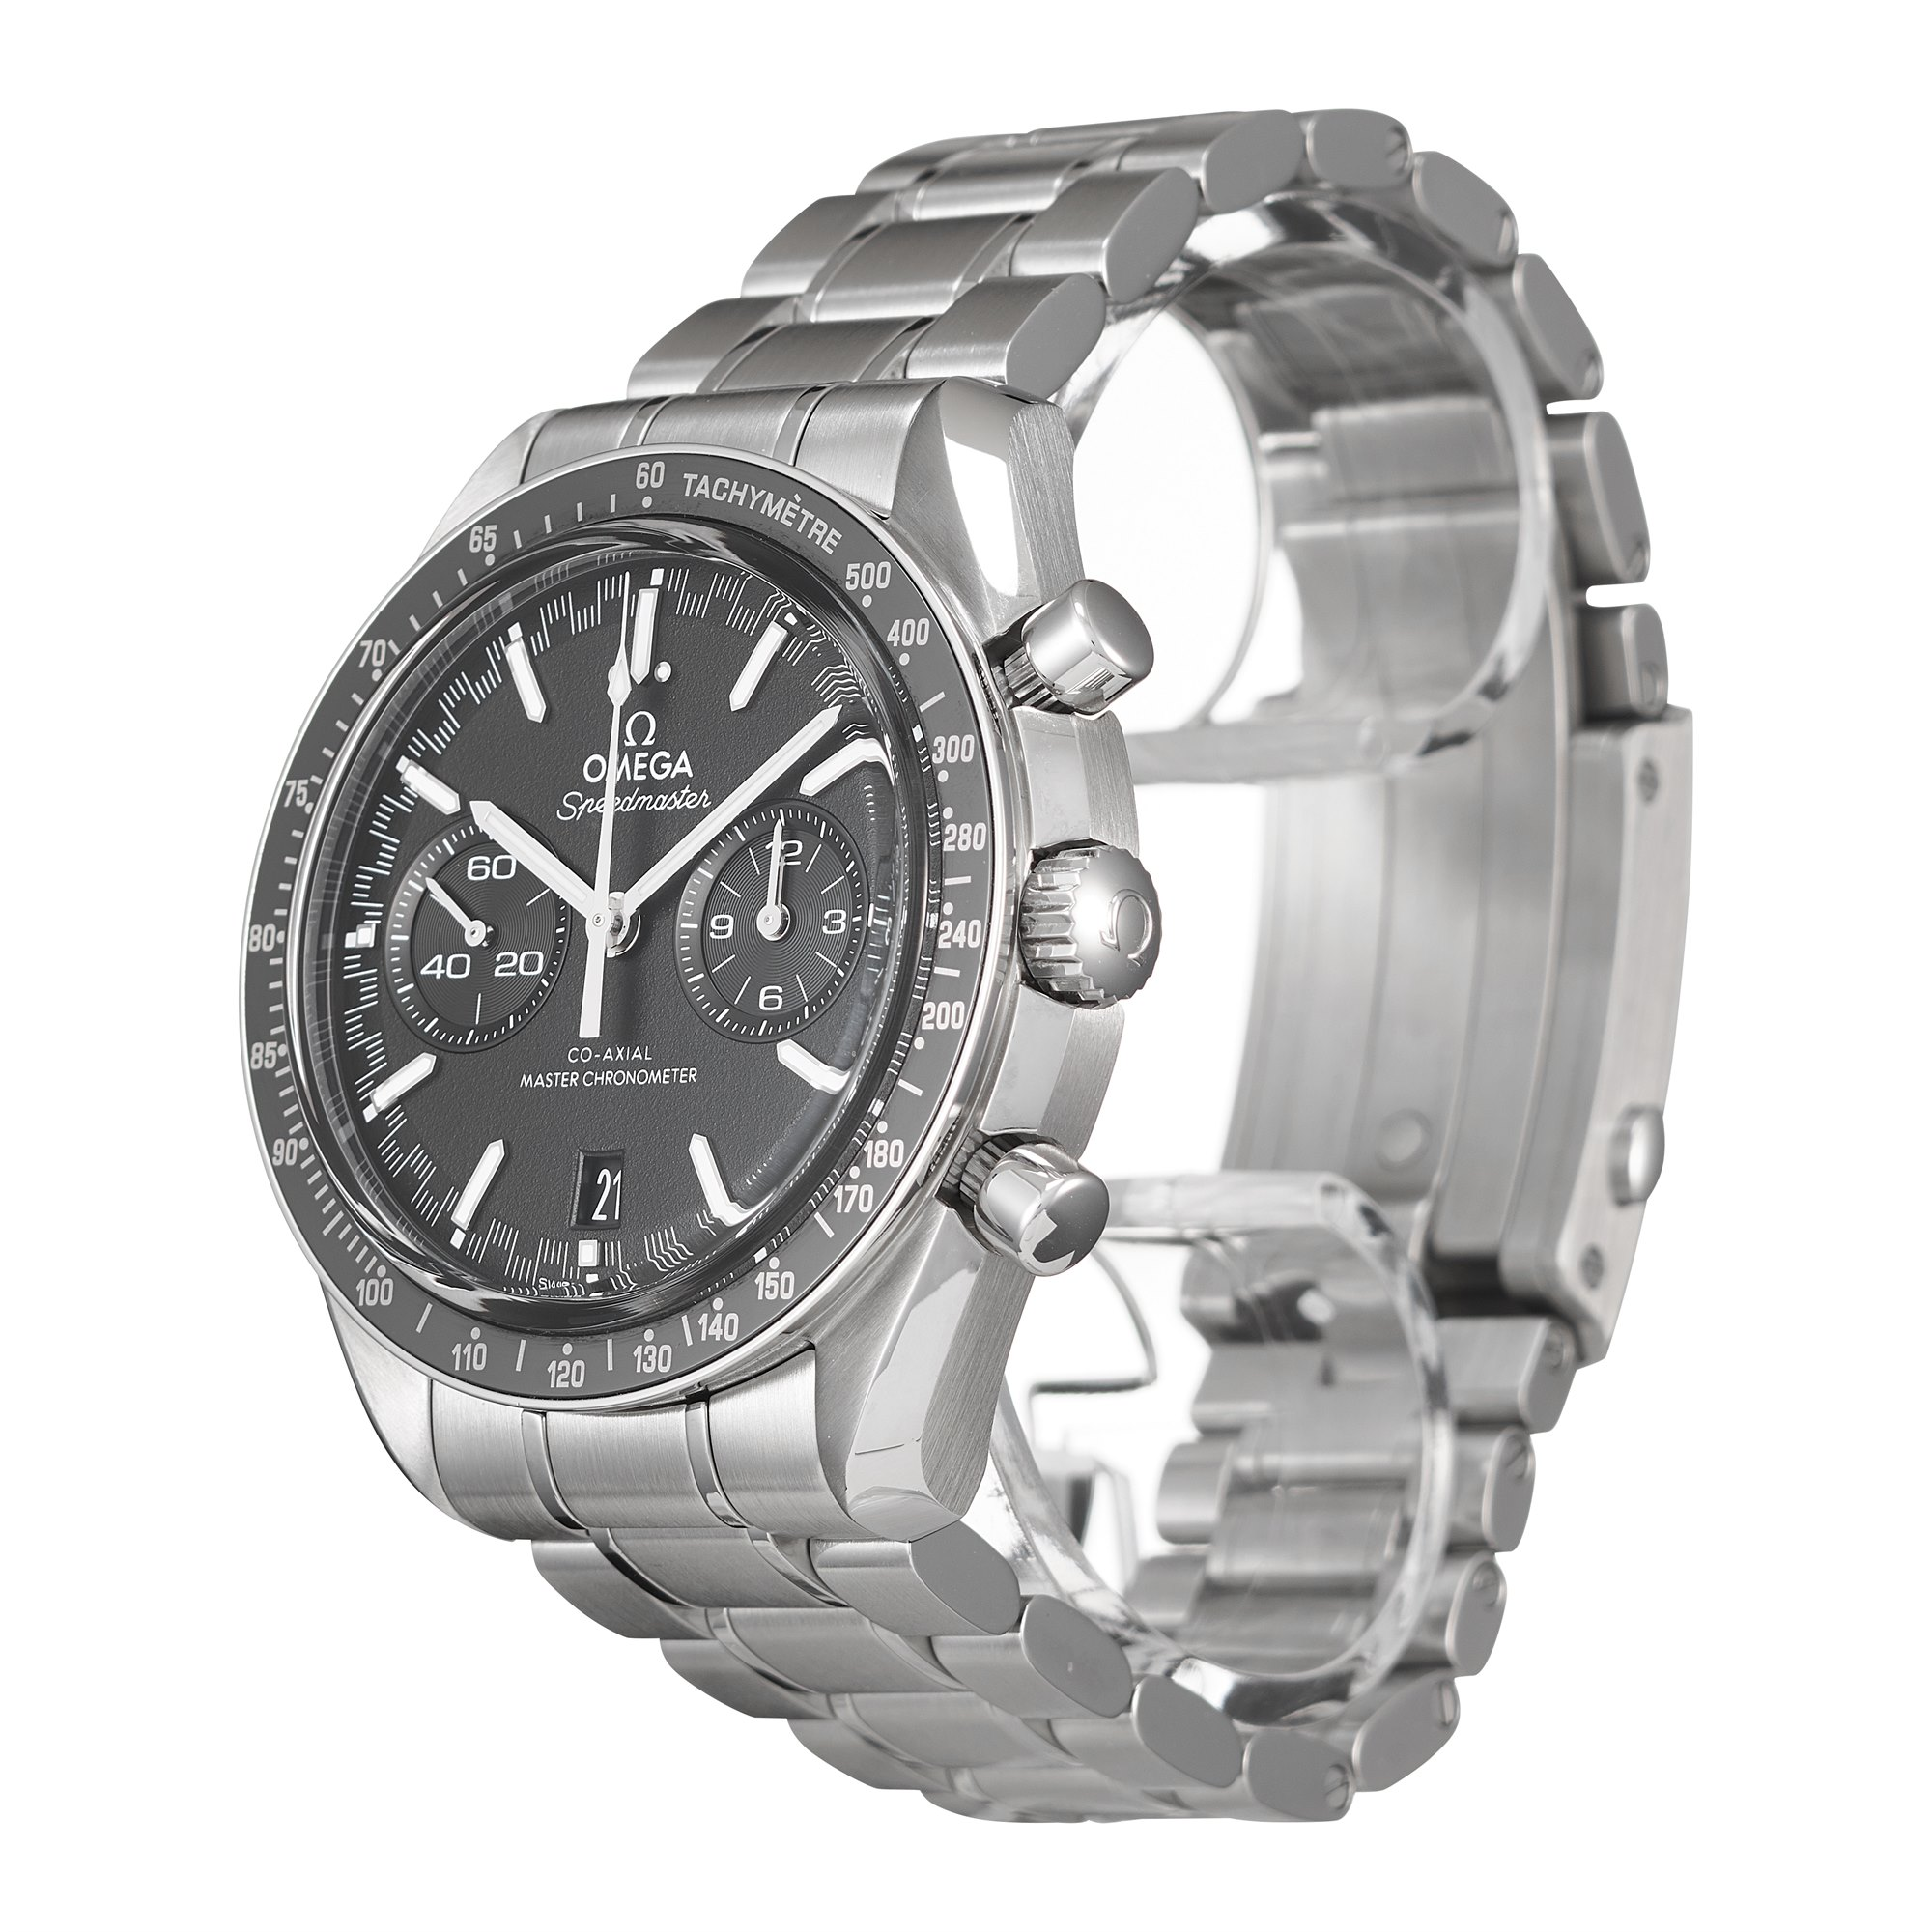 Omega Speedmaster Racing Co-Axial Master Chronograph Stainless Steel 329.33.44.51.01.001